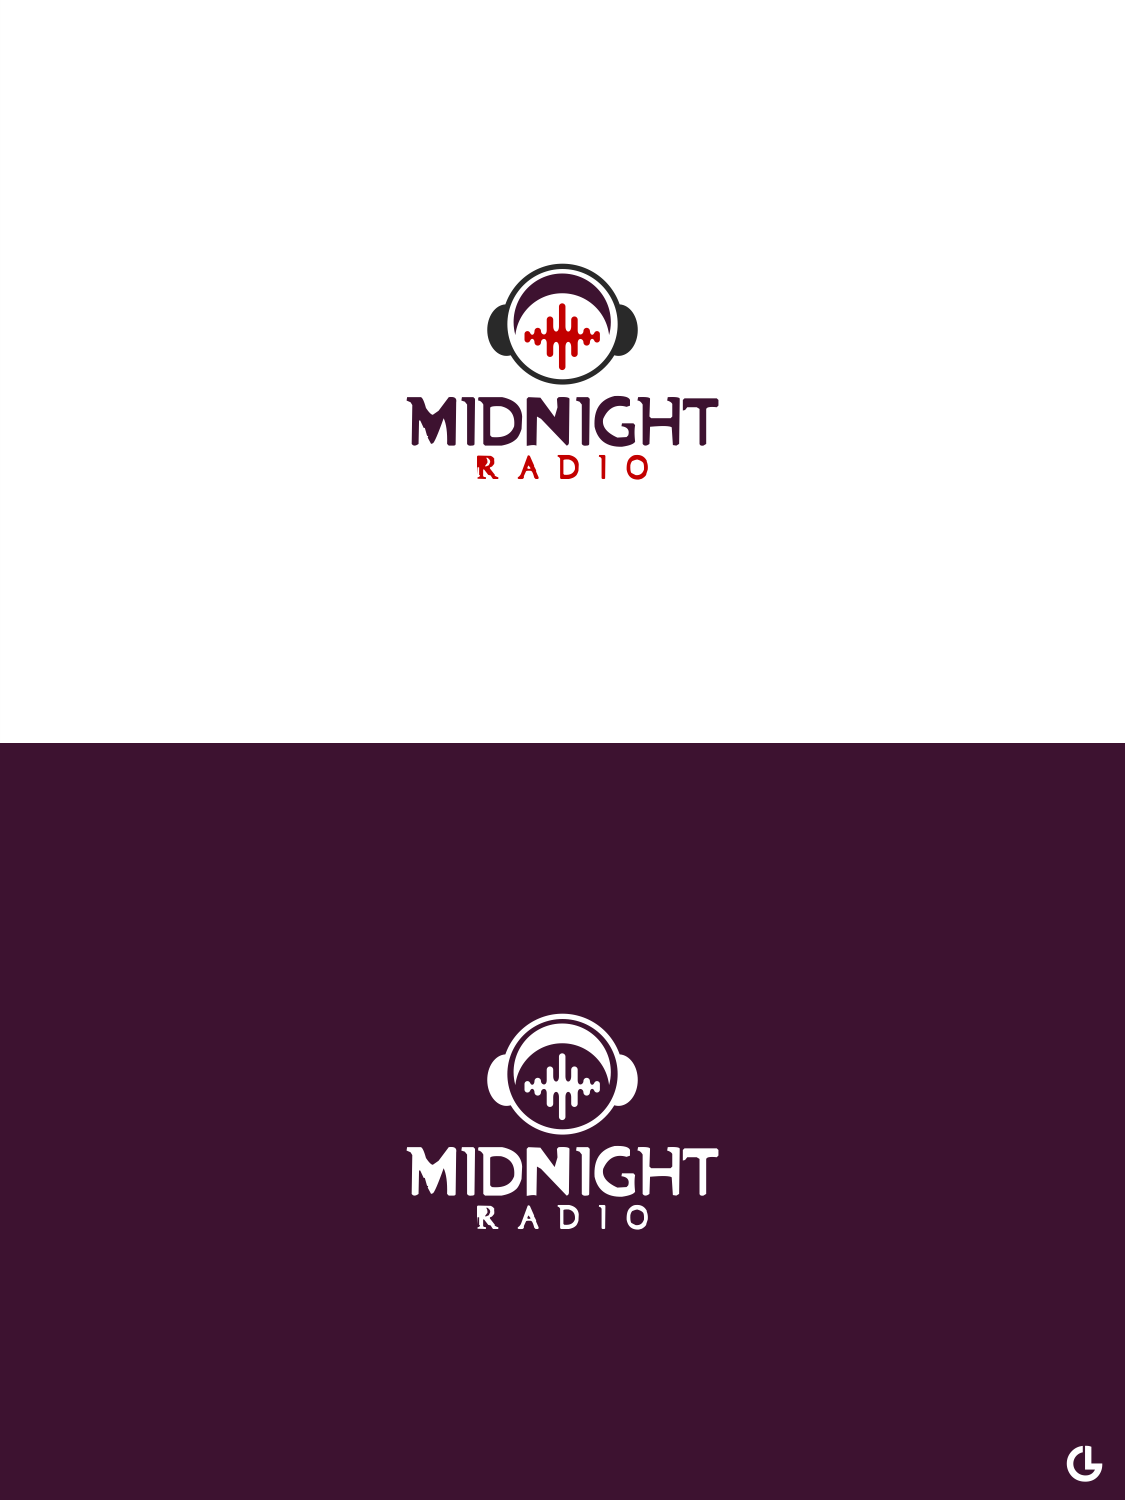 Personable, Colorful, Music Download Logo Design for Midnight Radio